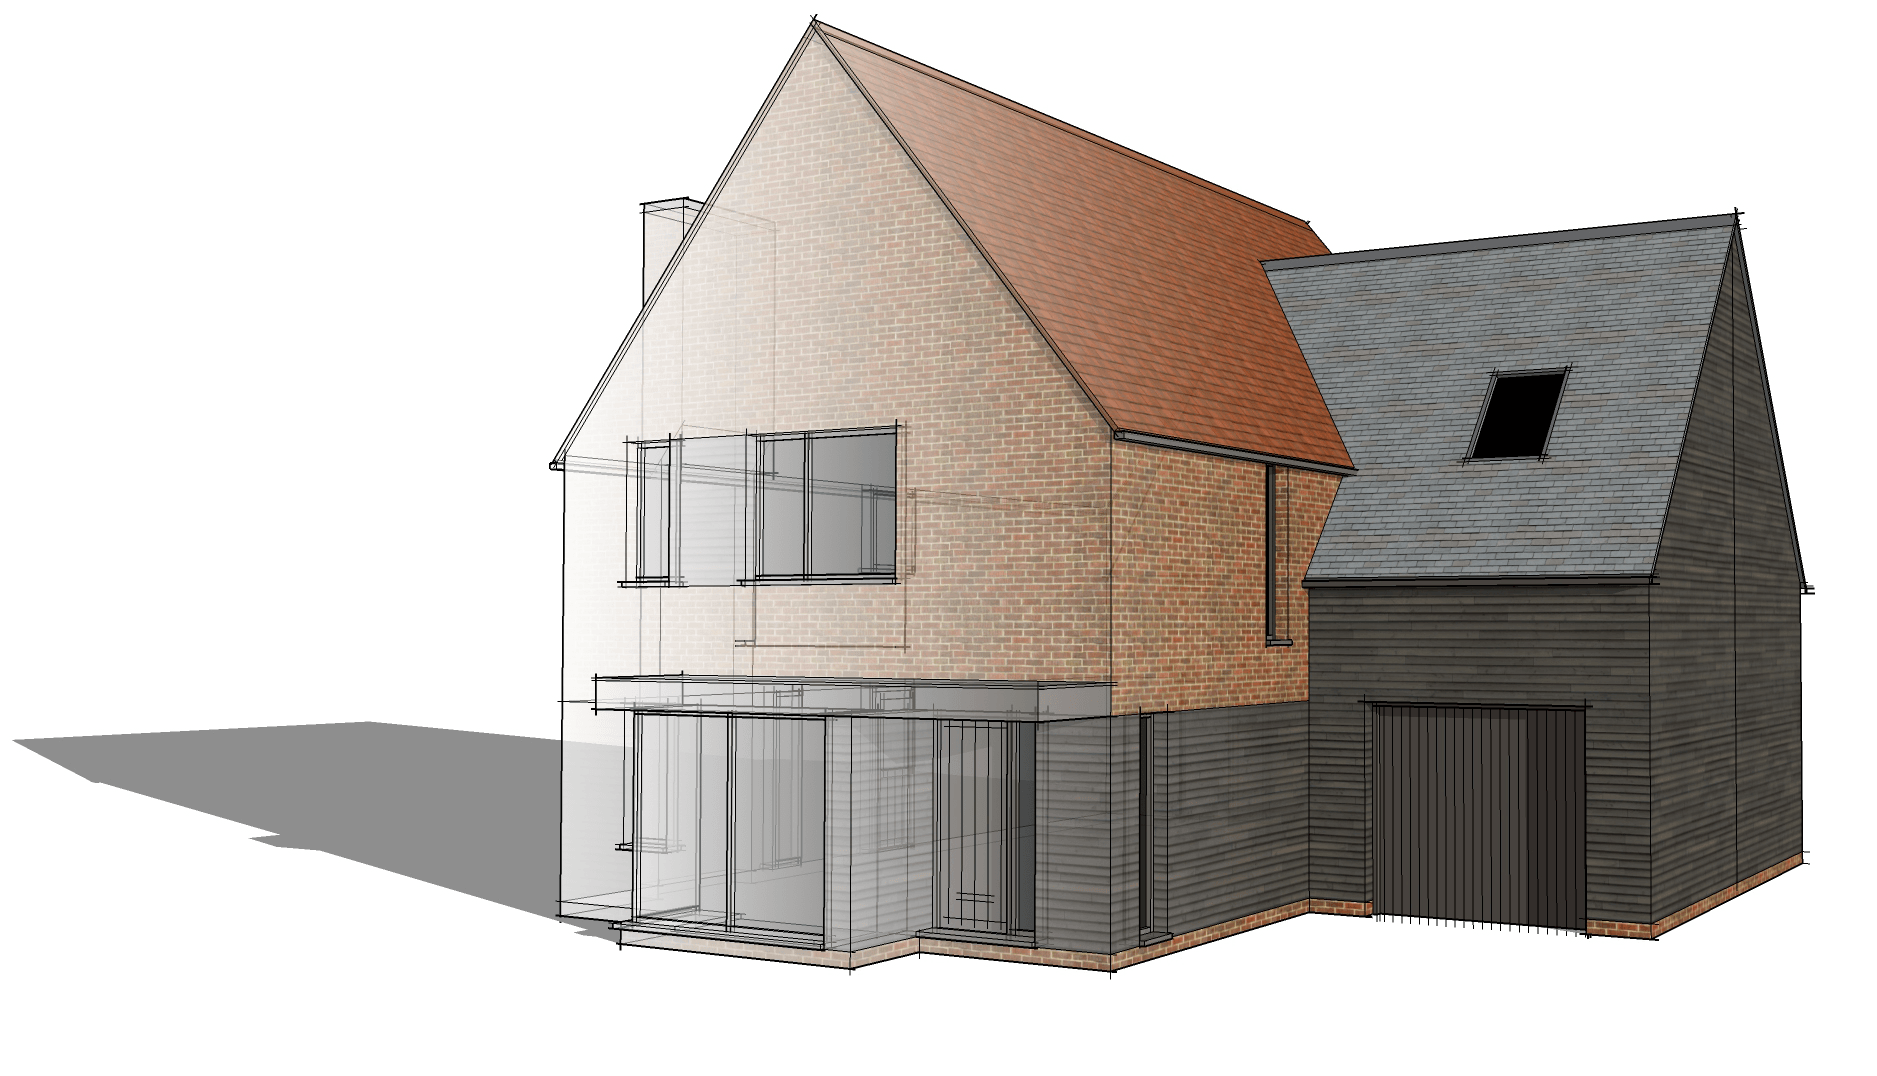 outline application submitted for 5 modern village houses